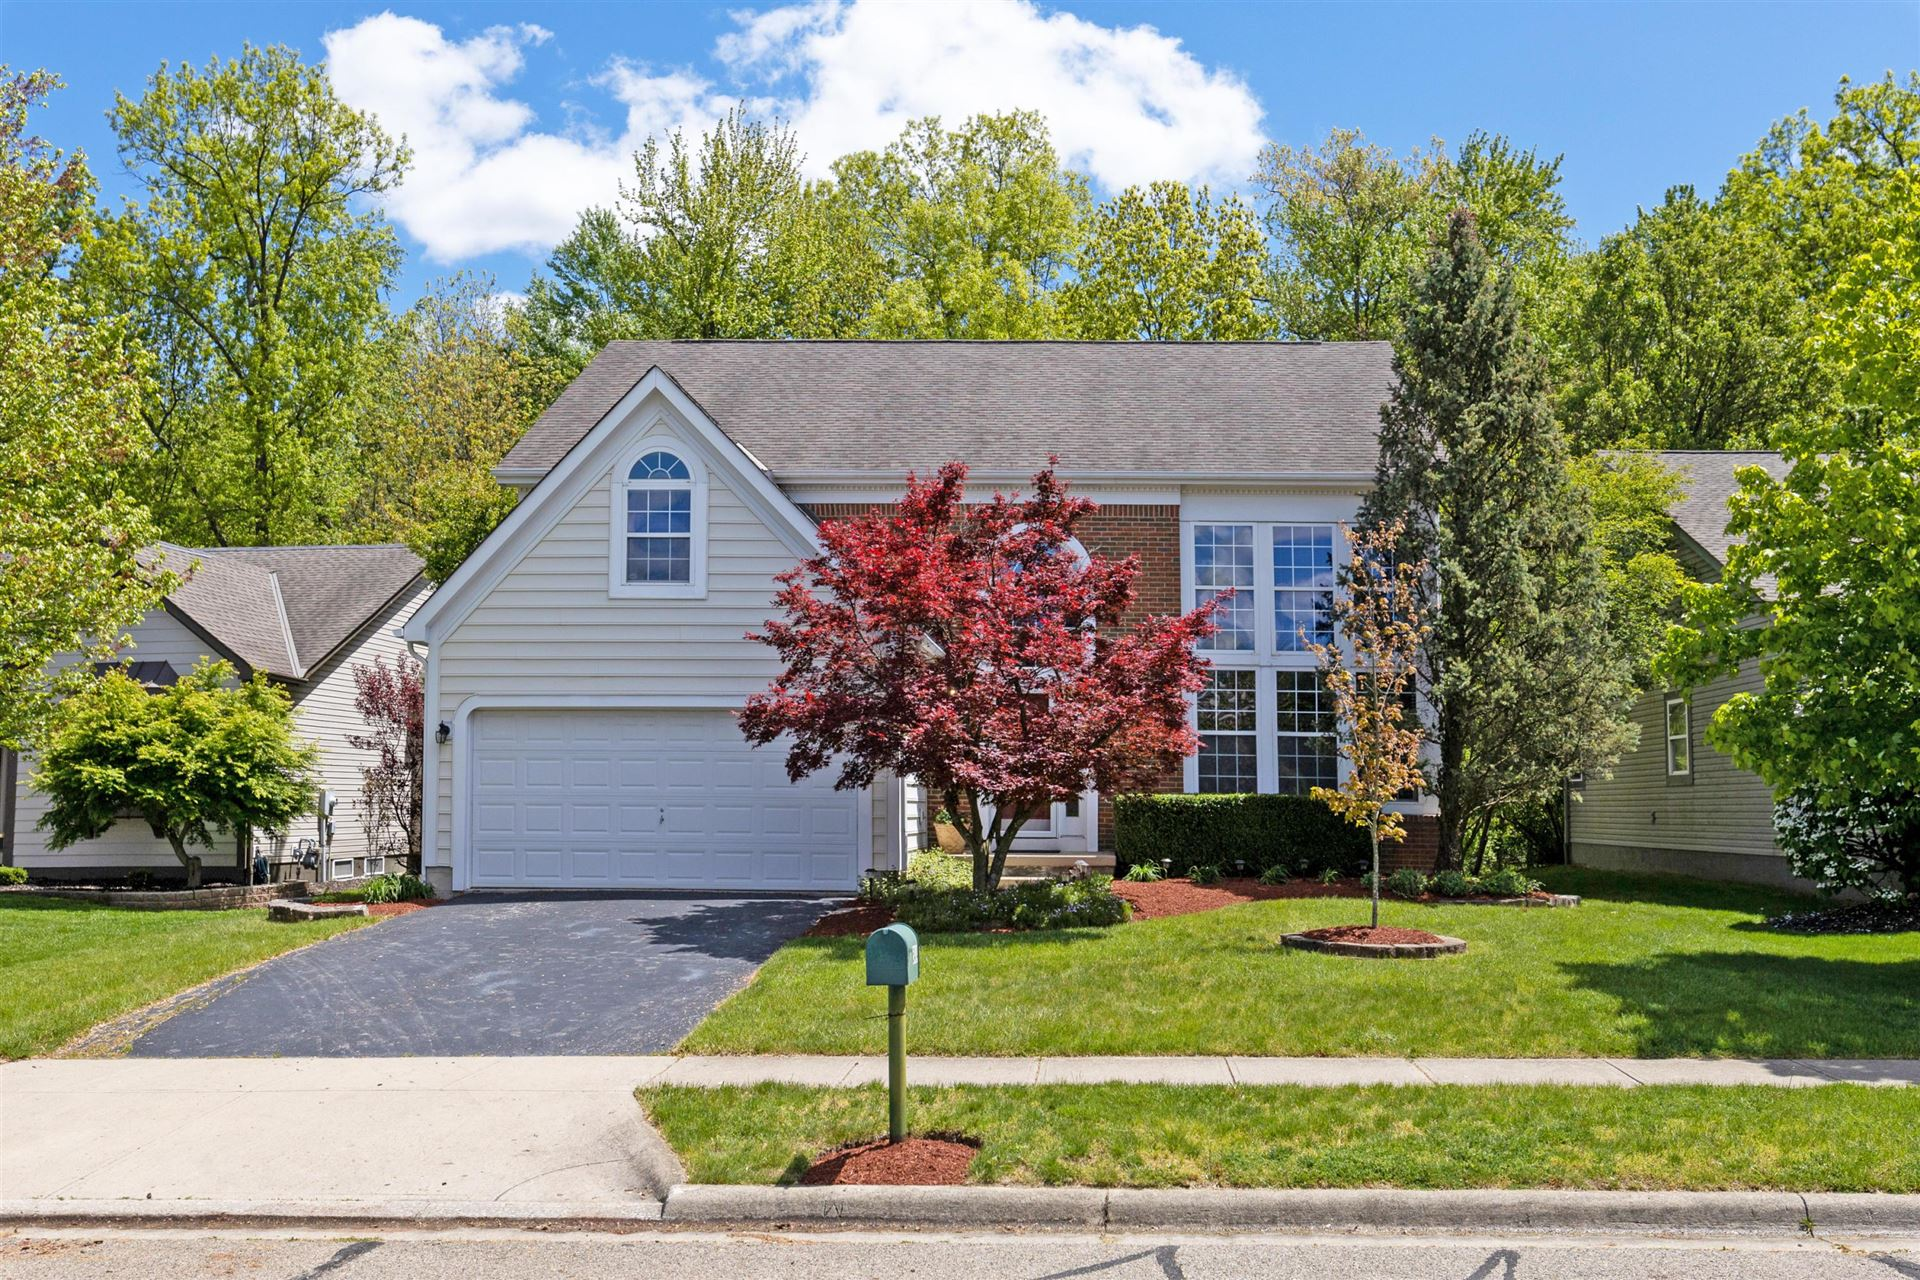 Photo of 5414 Bullfinch Drive, Westerville, OH 43081 (MLS # 221015906)